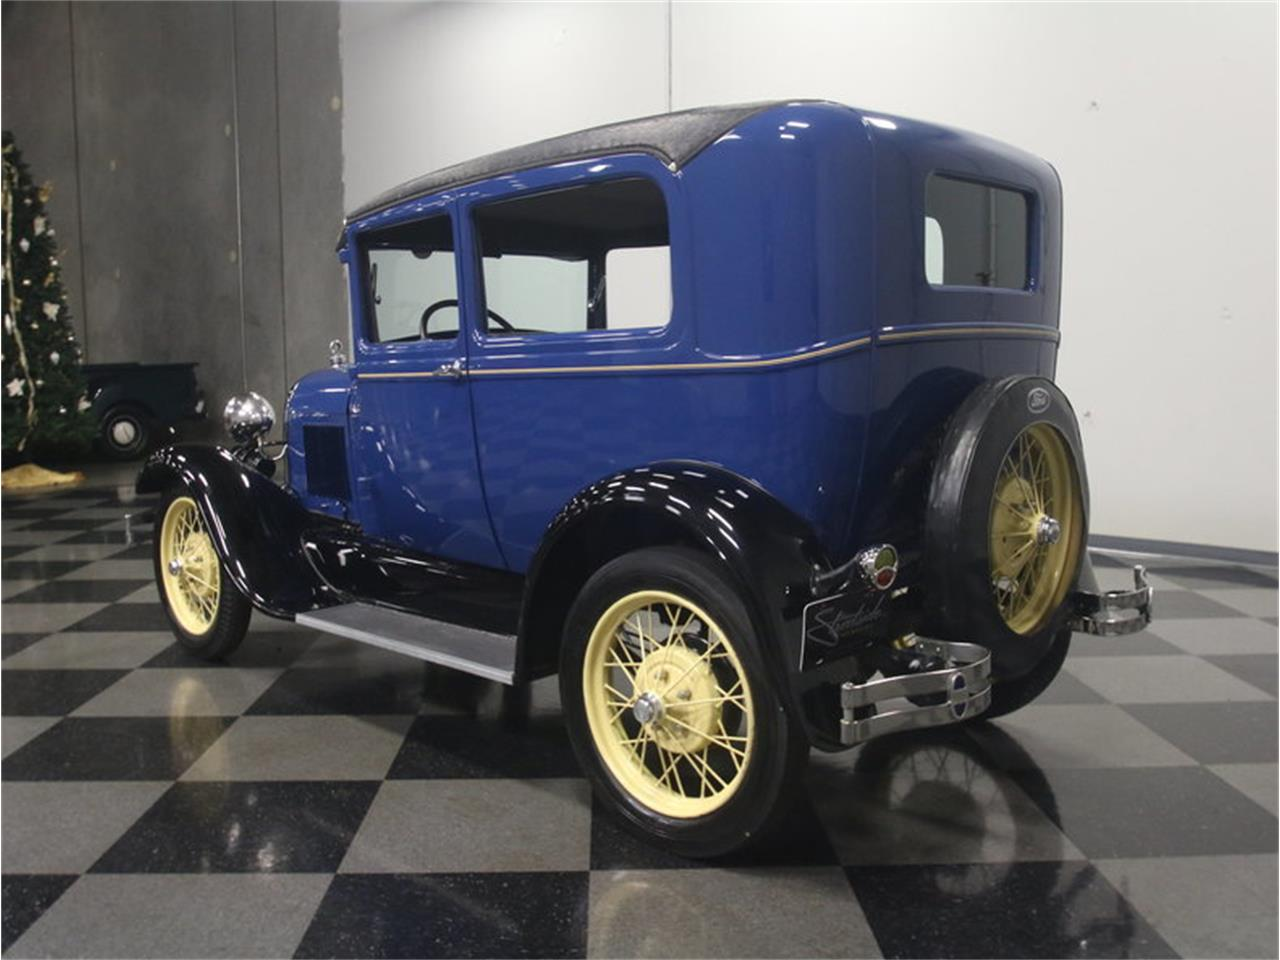 Large Picture of Classic '29 Ford Model A 2-Door Sedan - $19,995.00 Offered by Streetside Classics - Atlanta - MO3U